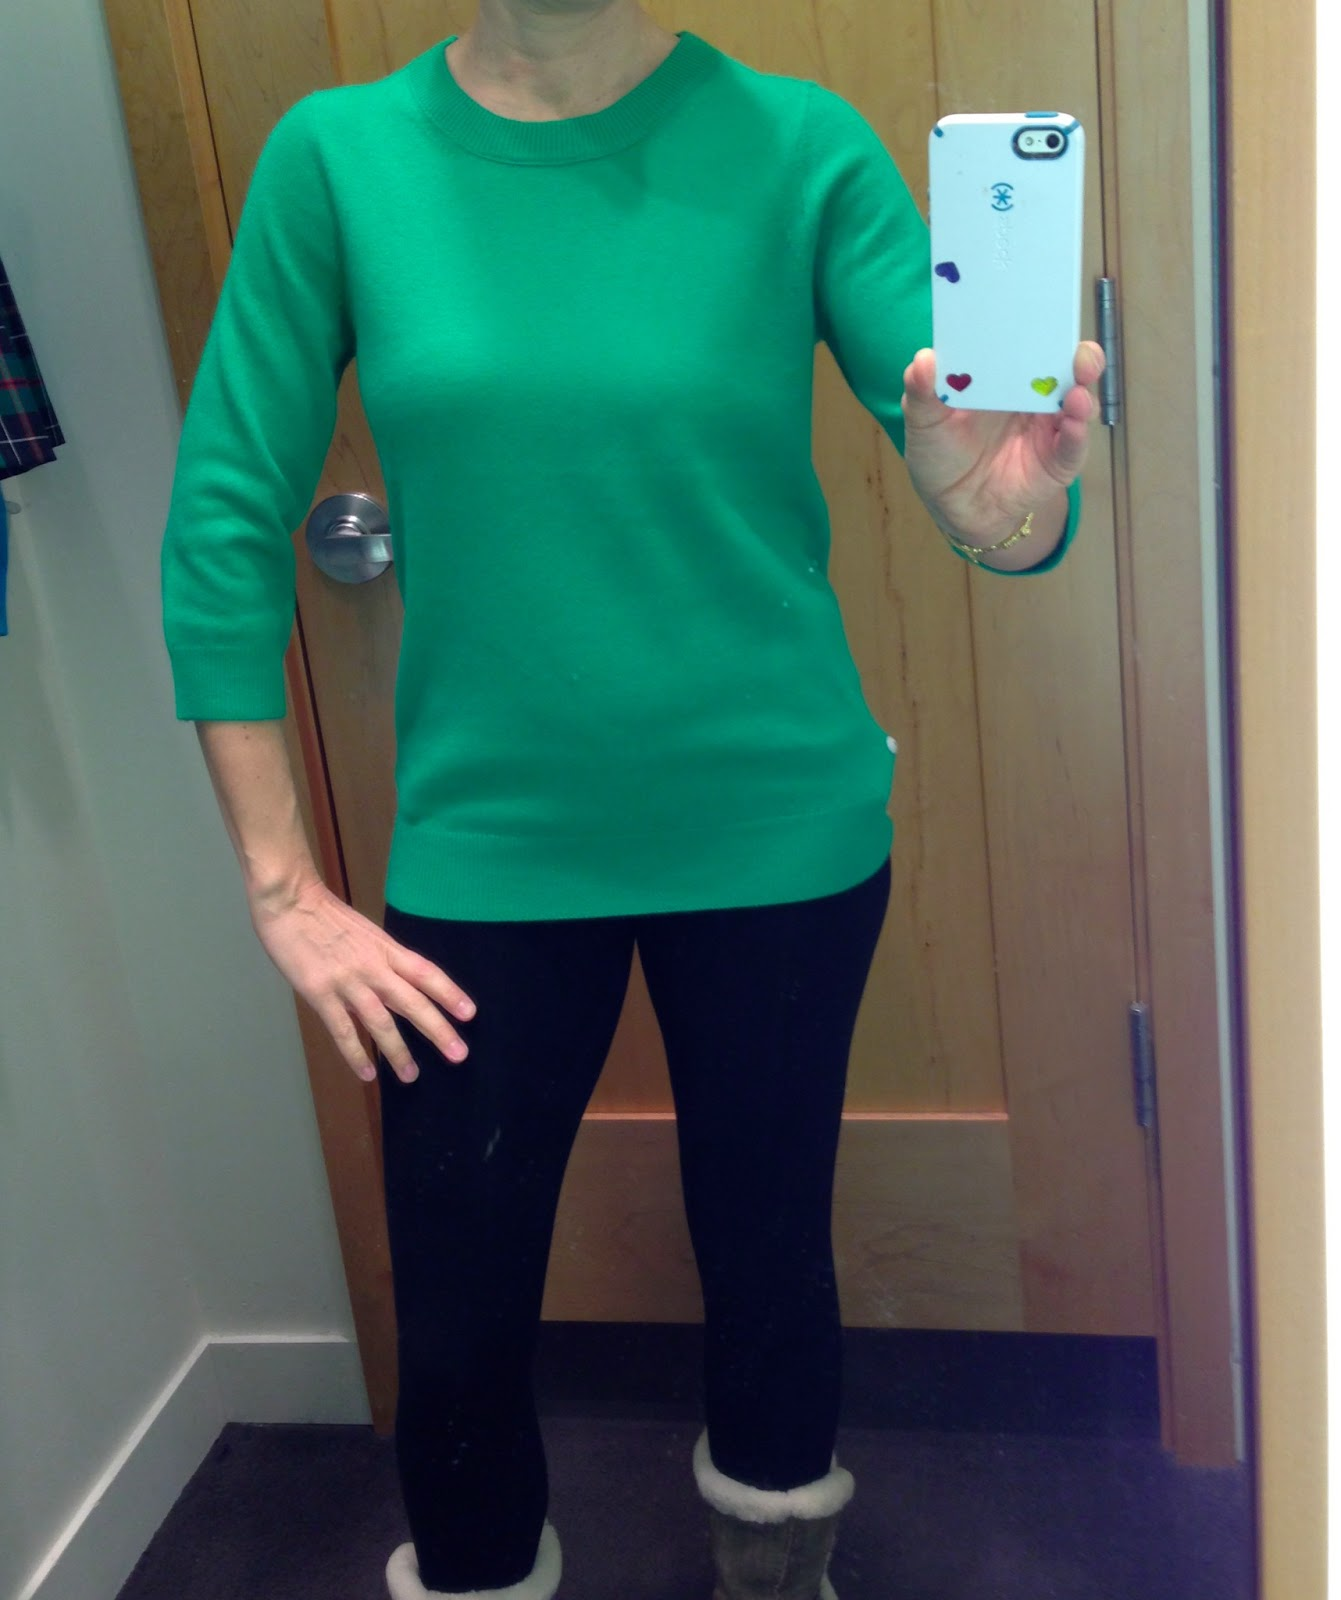 c30f761173 ... Kelly Green. Sorry - my link is to the full price Cashmere Tippi. You  have to search for the sale on under sale sweaters. They had a bunch of  these at ...